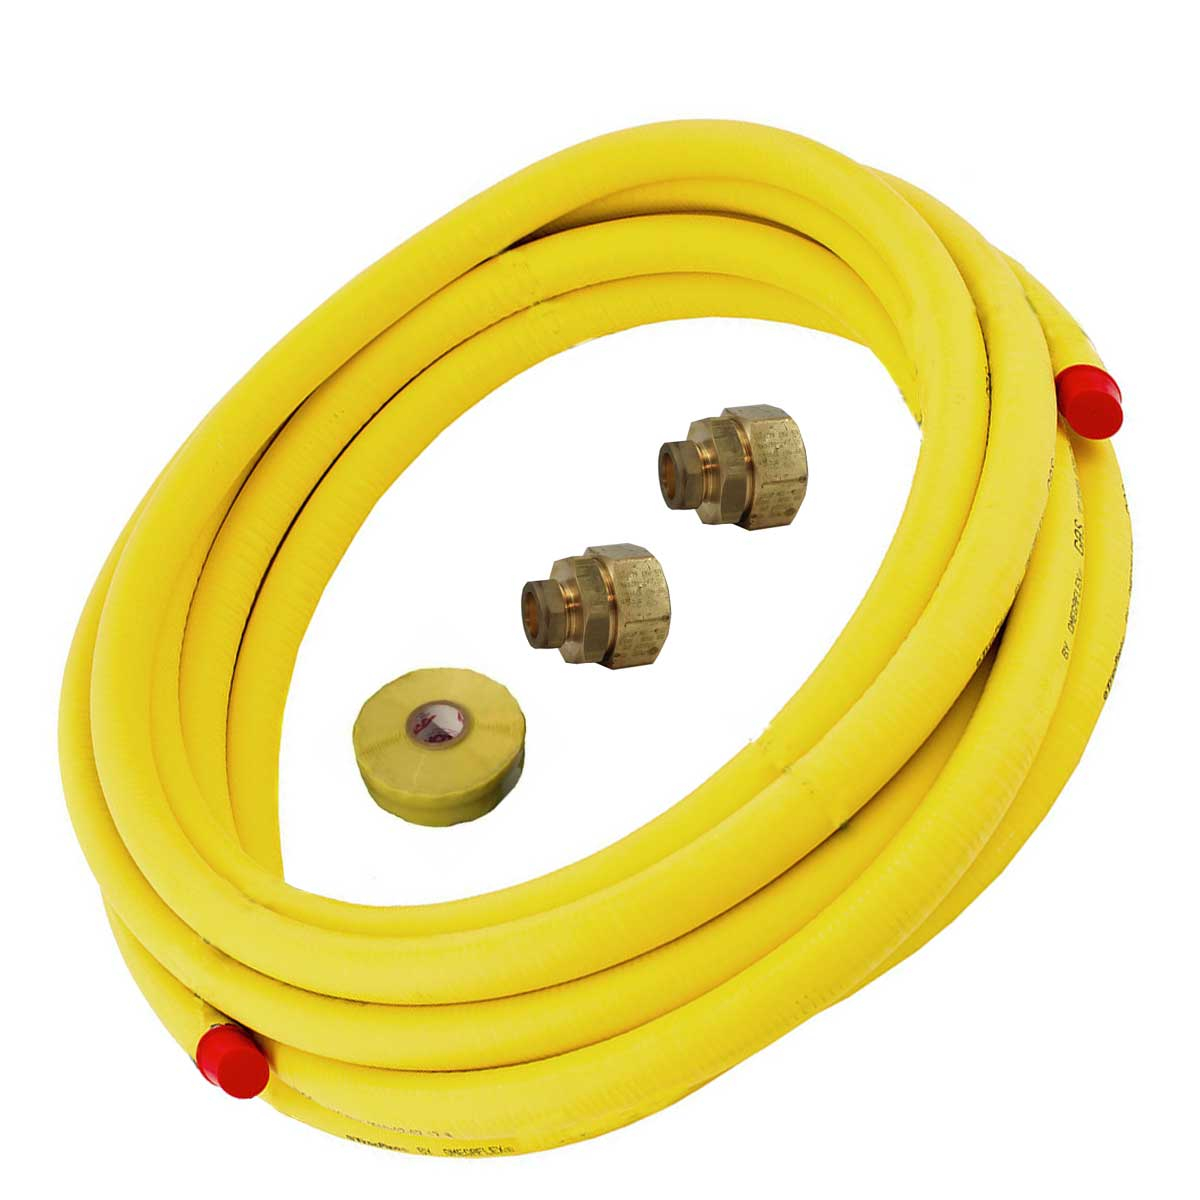 TracPipe 10m Flexible Gas Pipe Fittings and Tape Pack 28mm